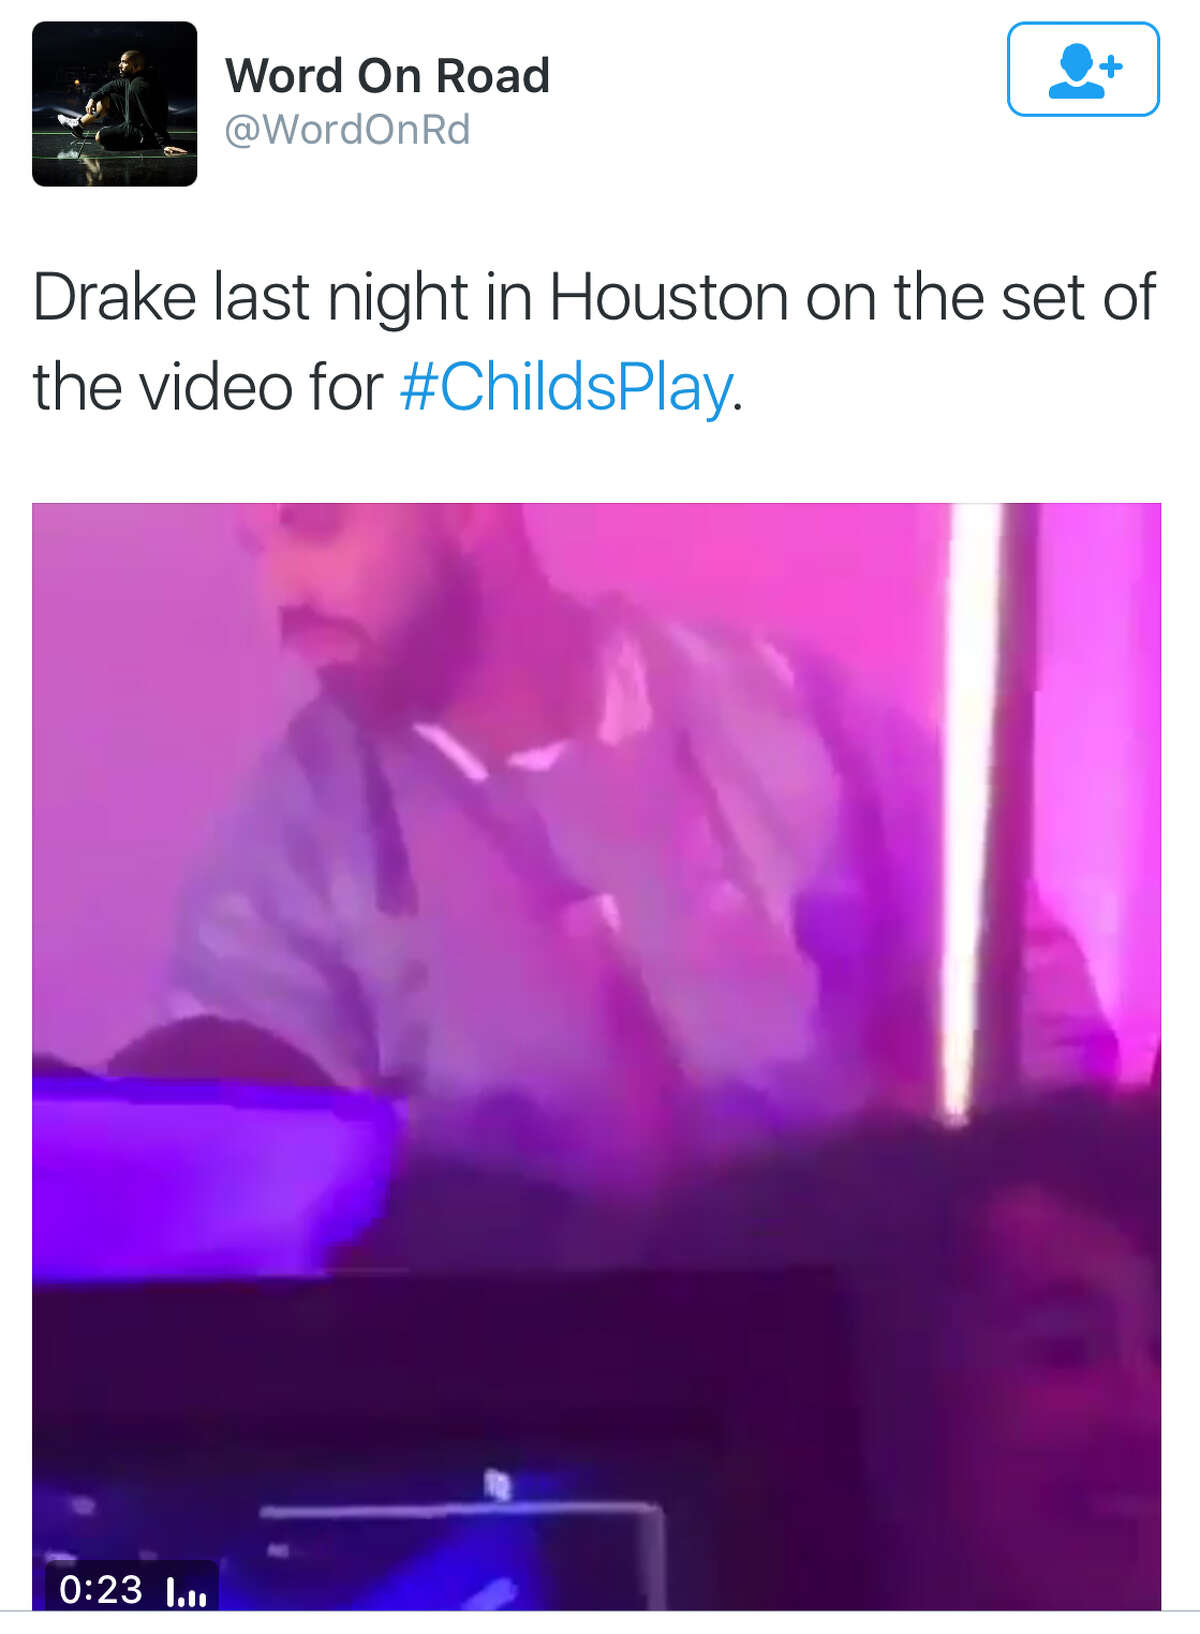 Rapper Drake was in Houston to shoot a video for Child's Play at VLive. He also visited the Cheesecake Factory. It was trending Wednesday night/Thursday morning on Twitter.